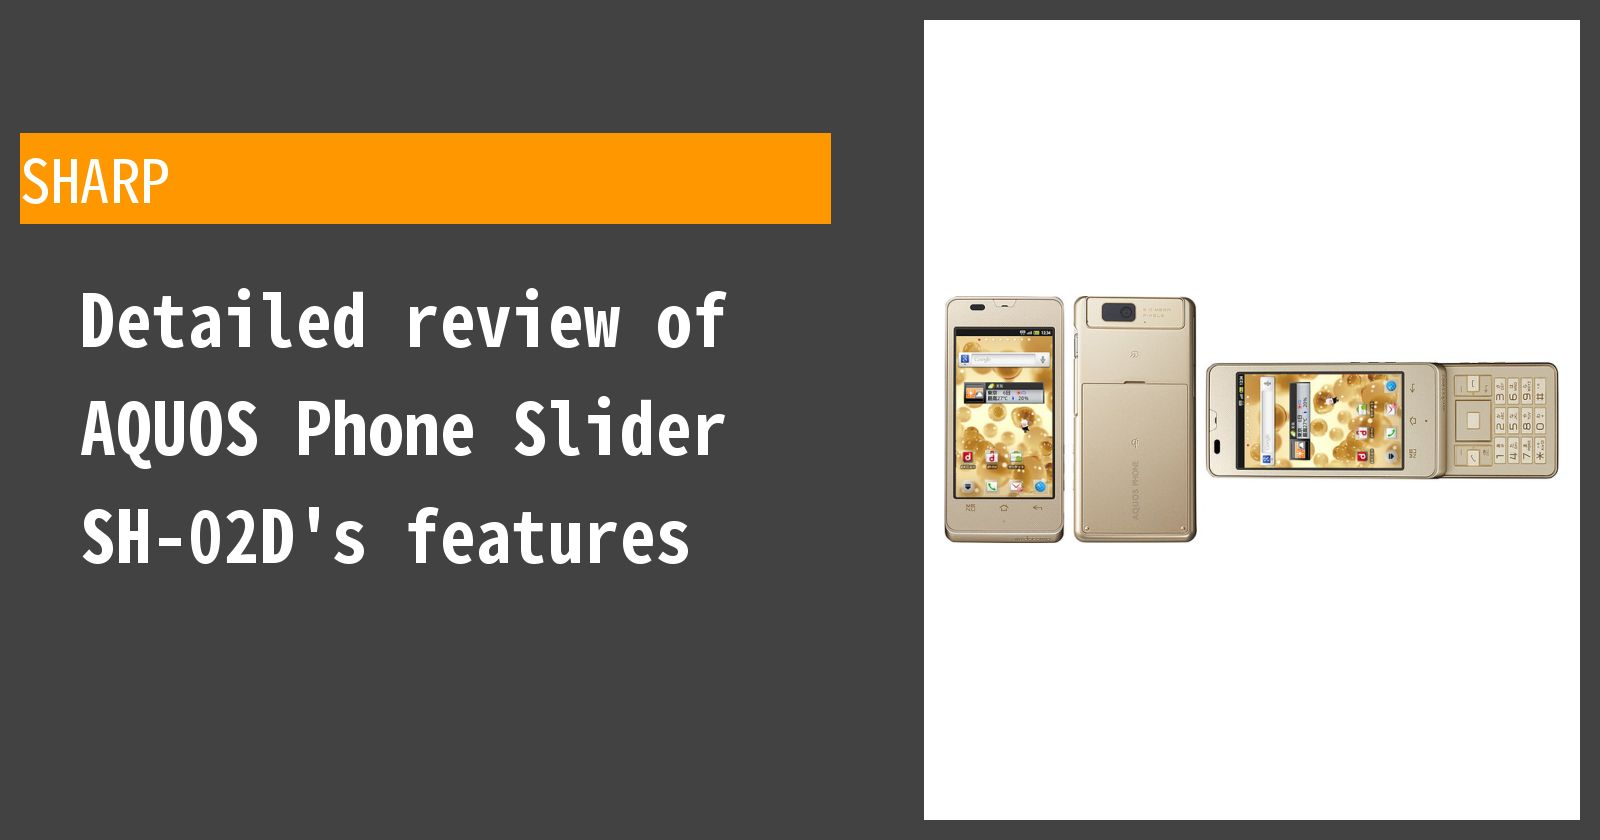 Detailed review of AQUOS PHONE Slider SH-02D docomo's features